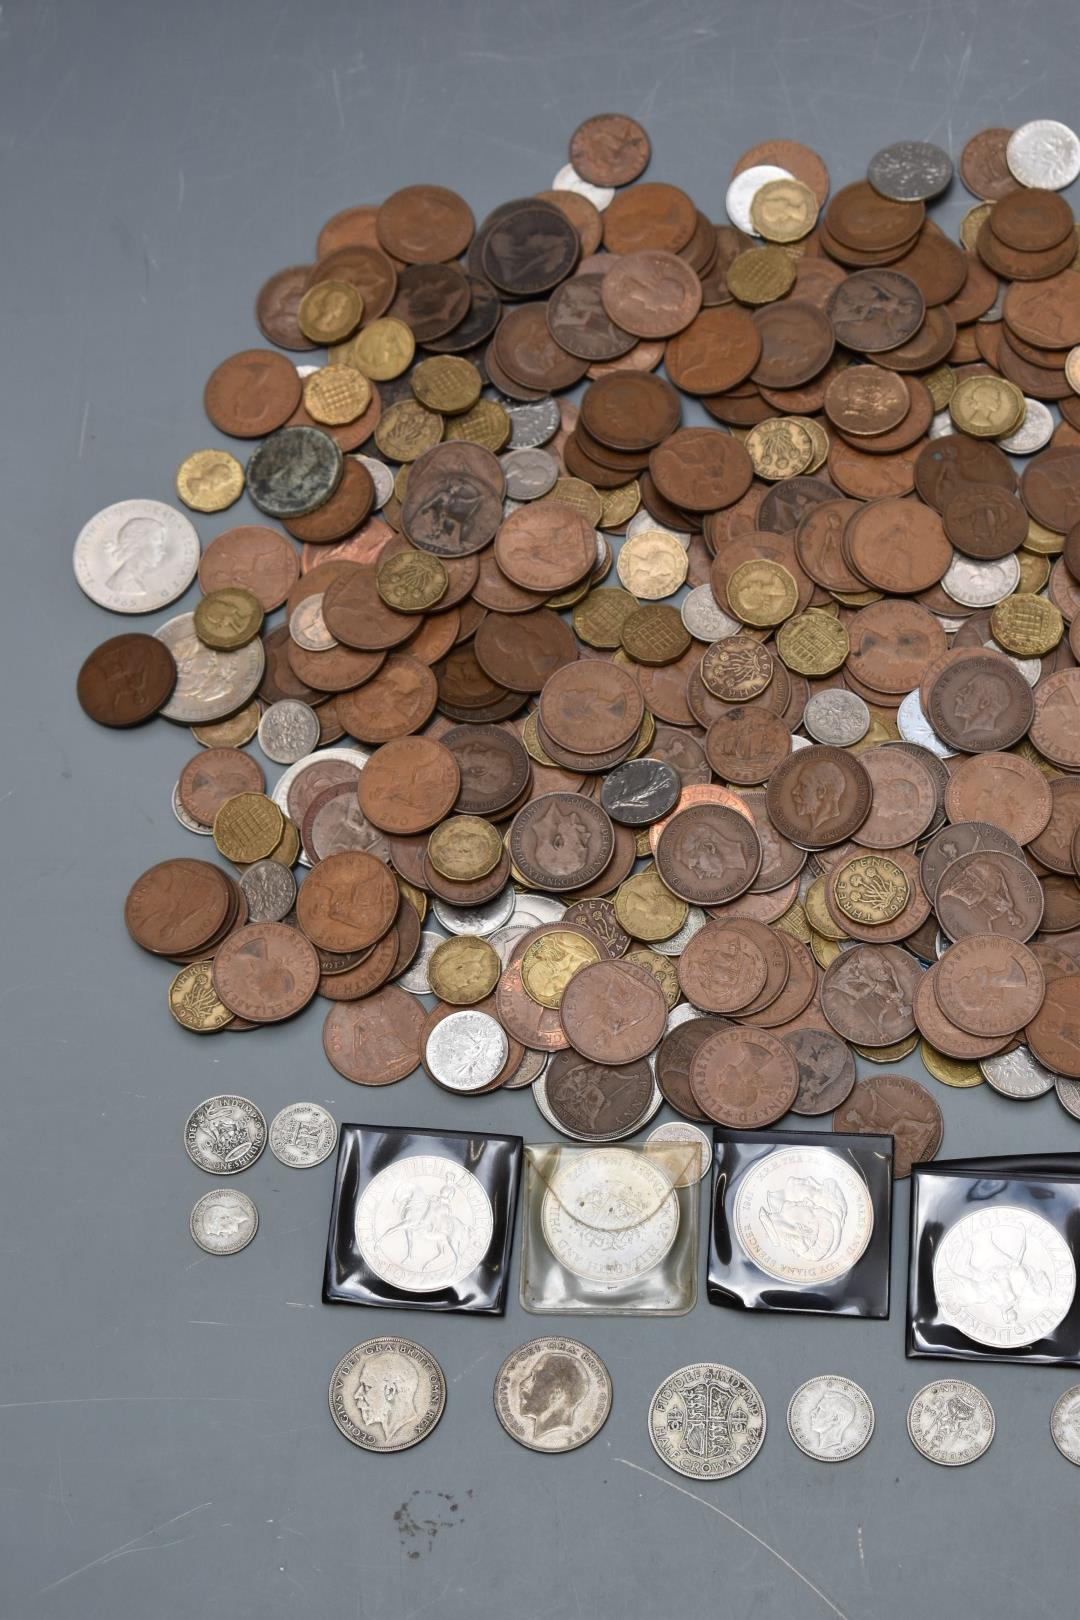 An amateur UK coin collection, Queen Victoria onwards, very small silver content, in vintage - Image 2 of 3